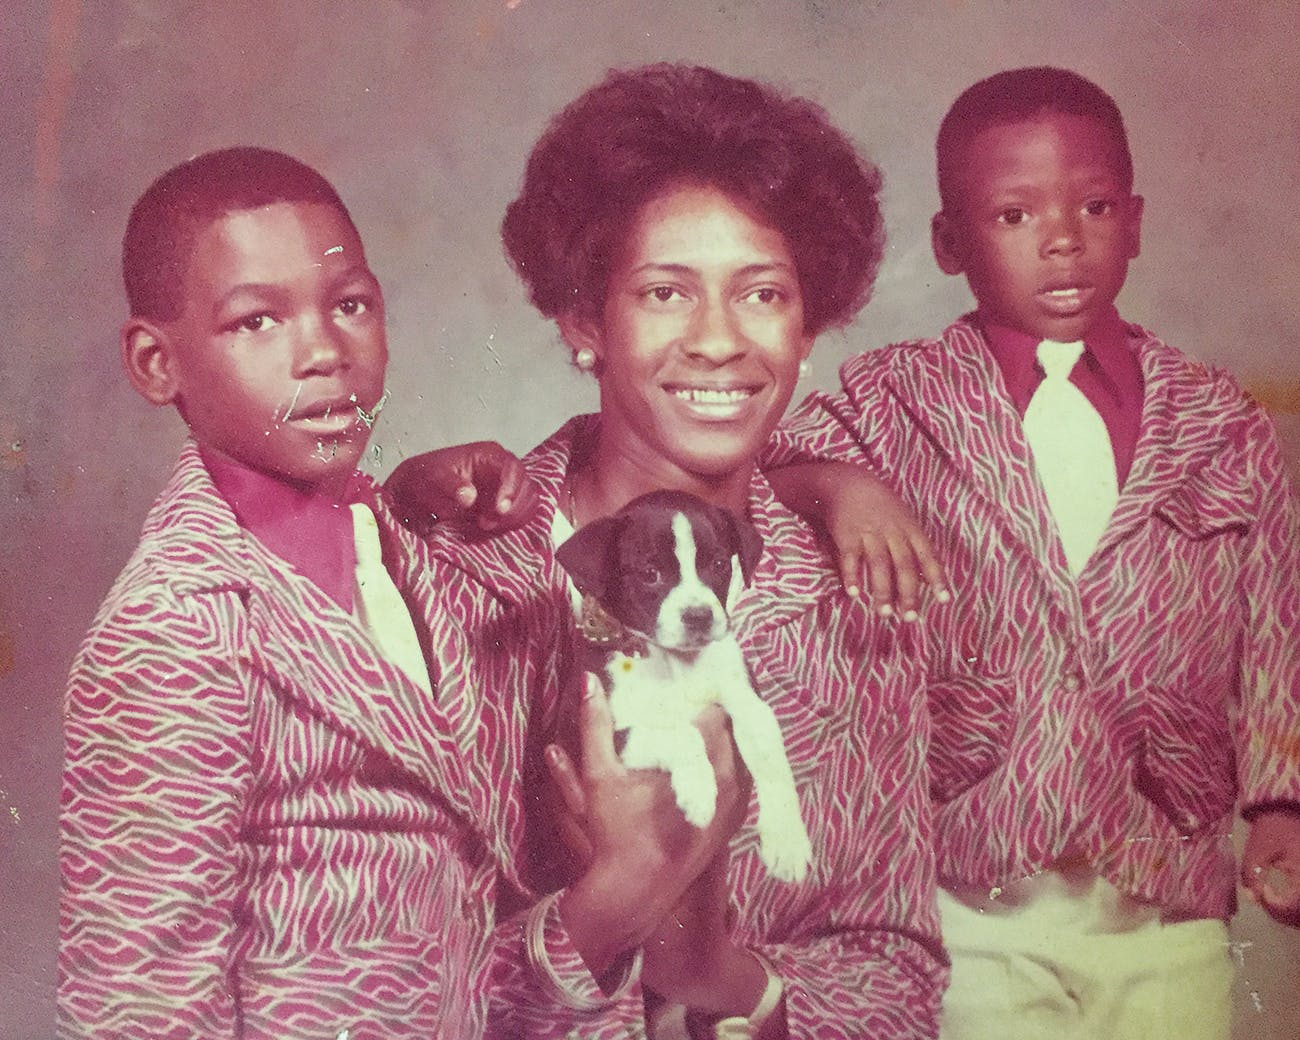 Ed, left, with his mom, Margie, and his brother, Kelvin, around 1975.